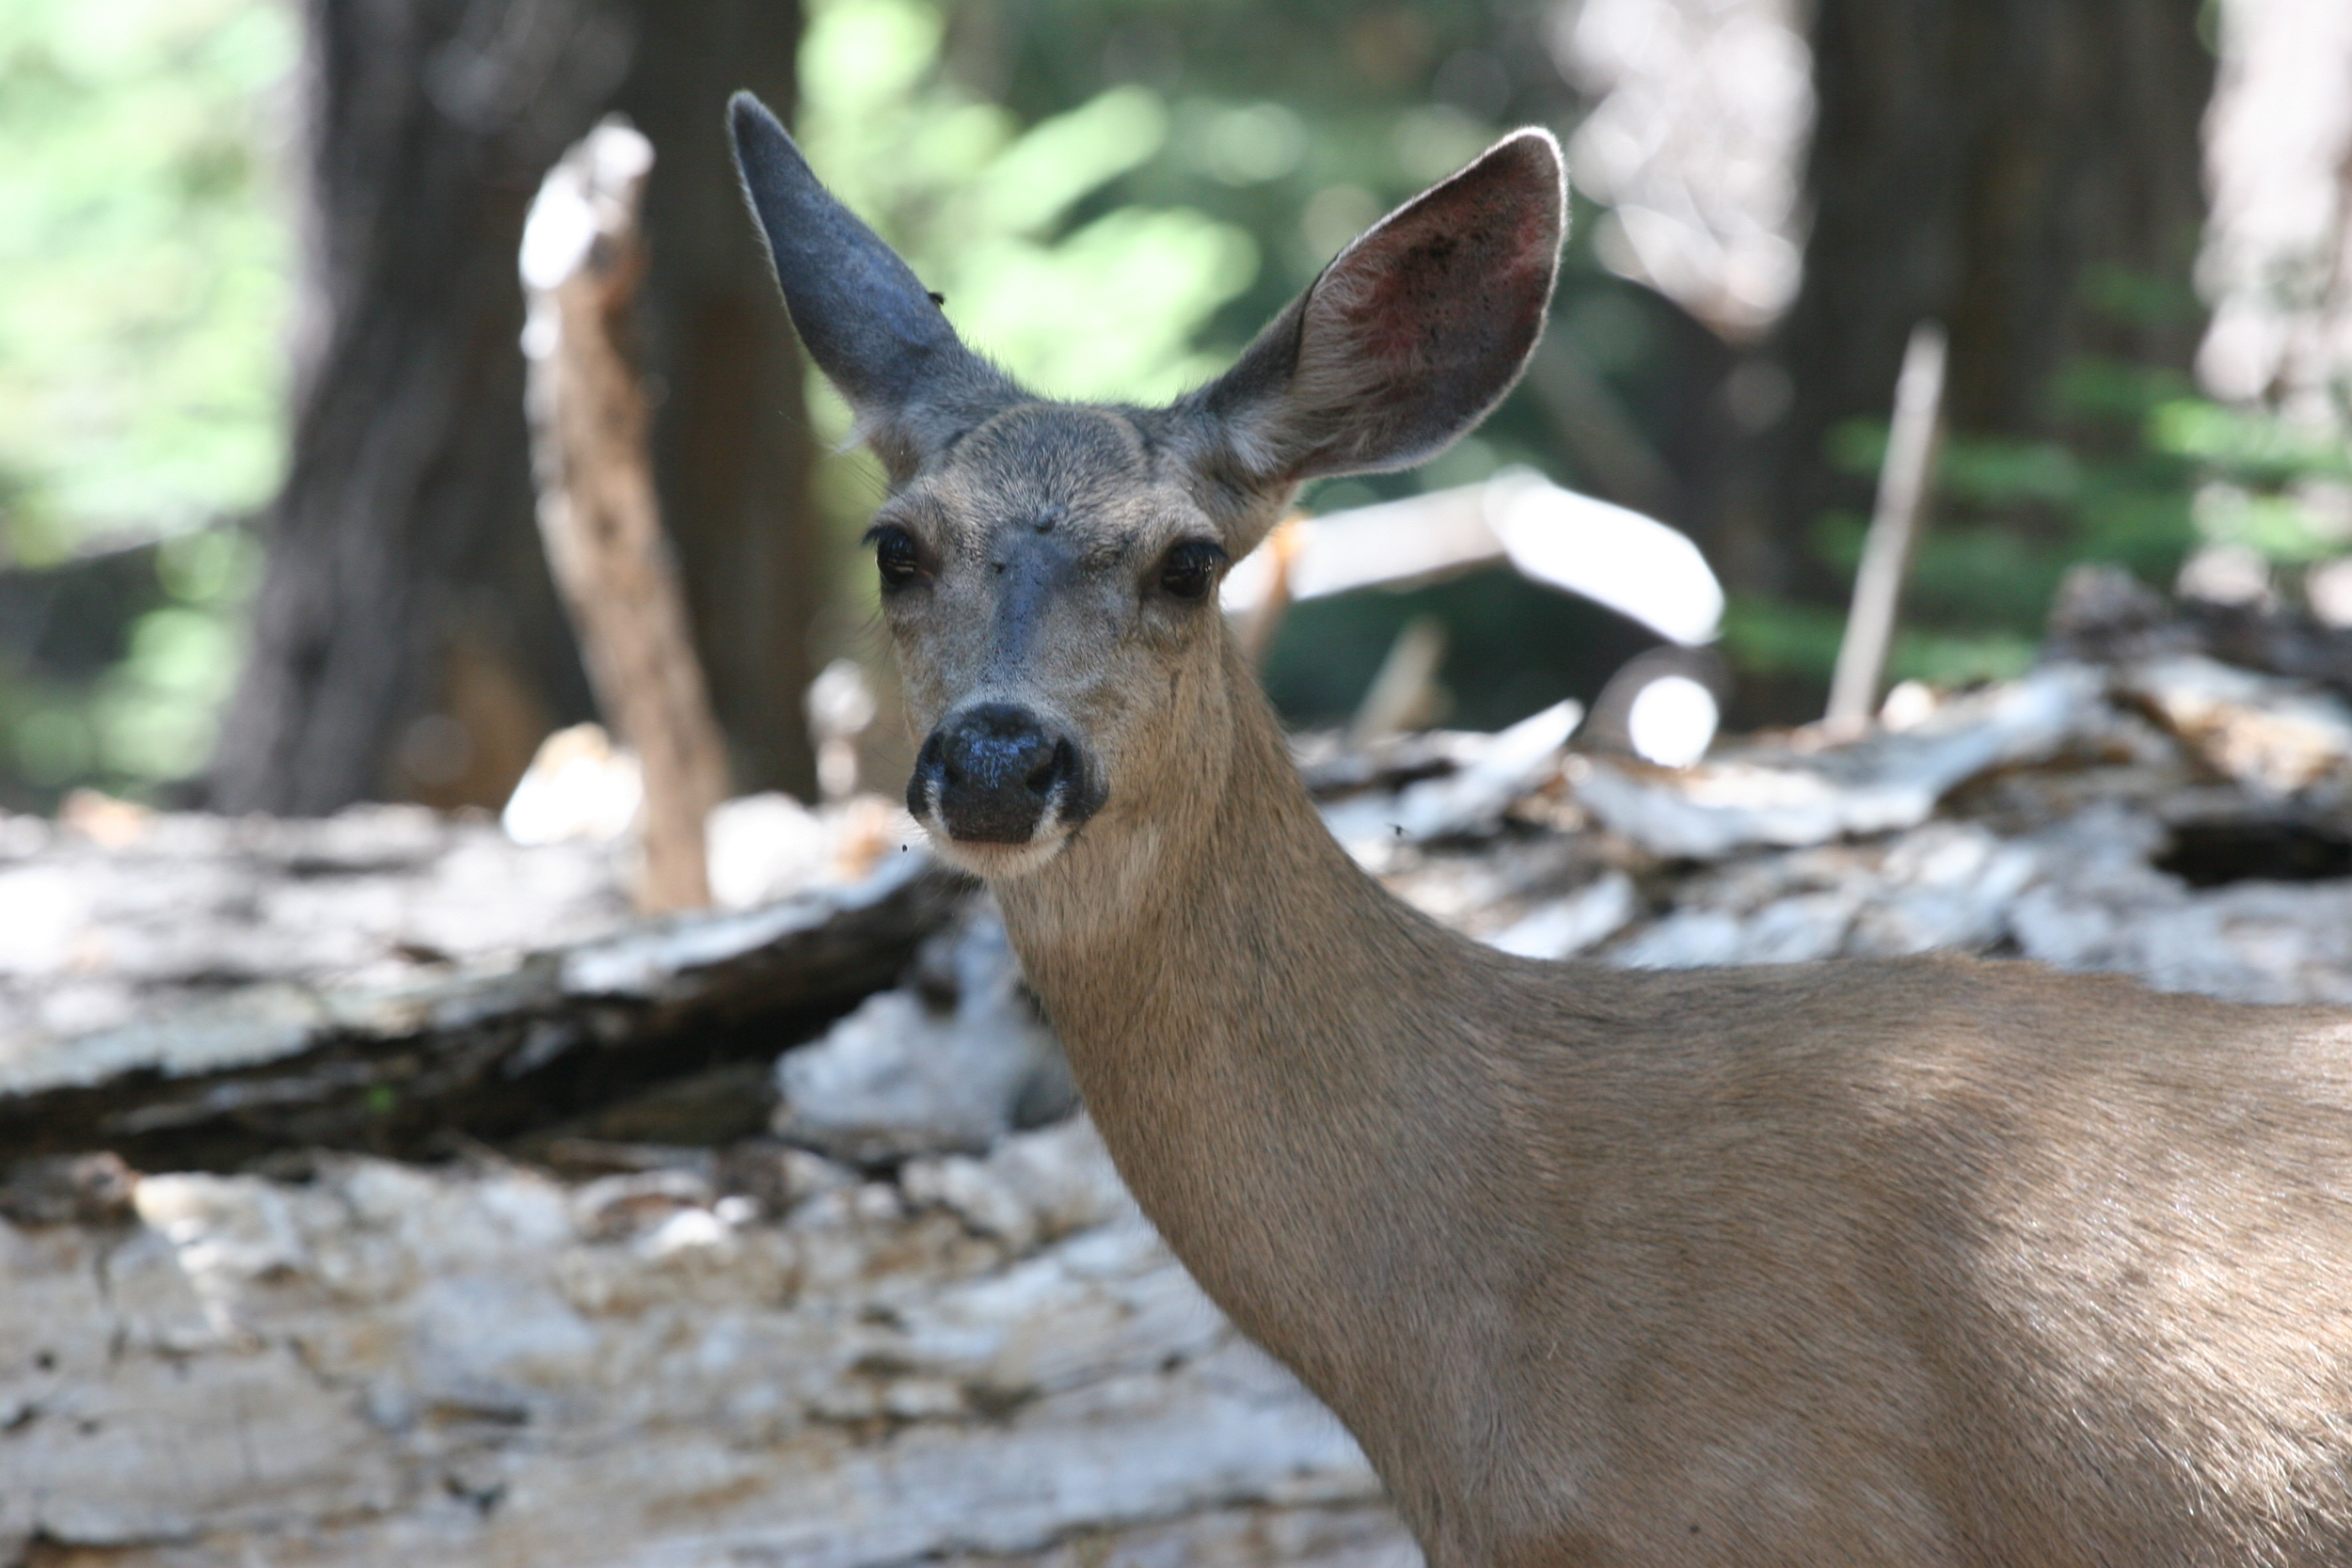 A healthy deer. Now, imagine, just you - and the head - on the trail, in the wilderness, alone...what would you do?